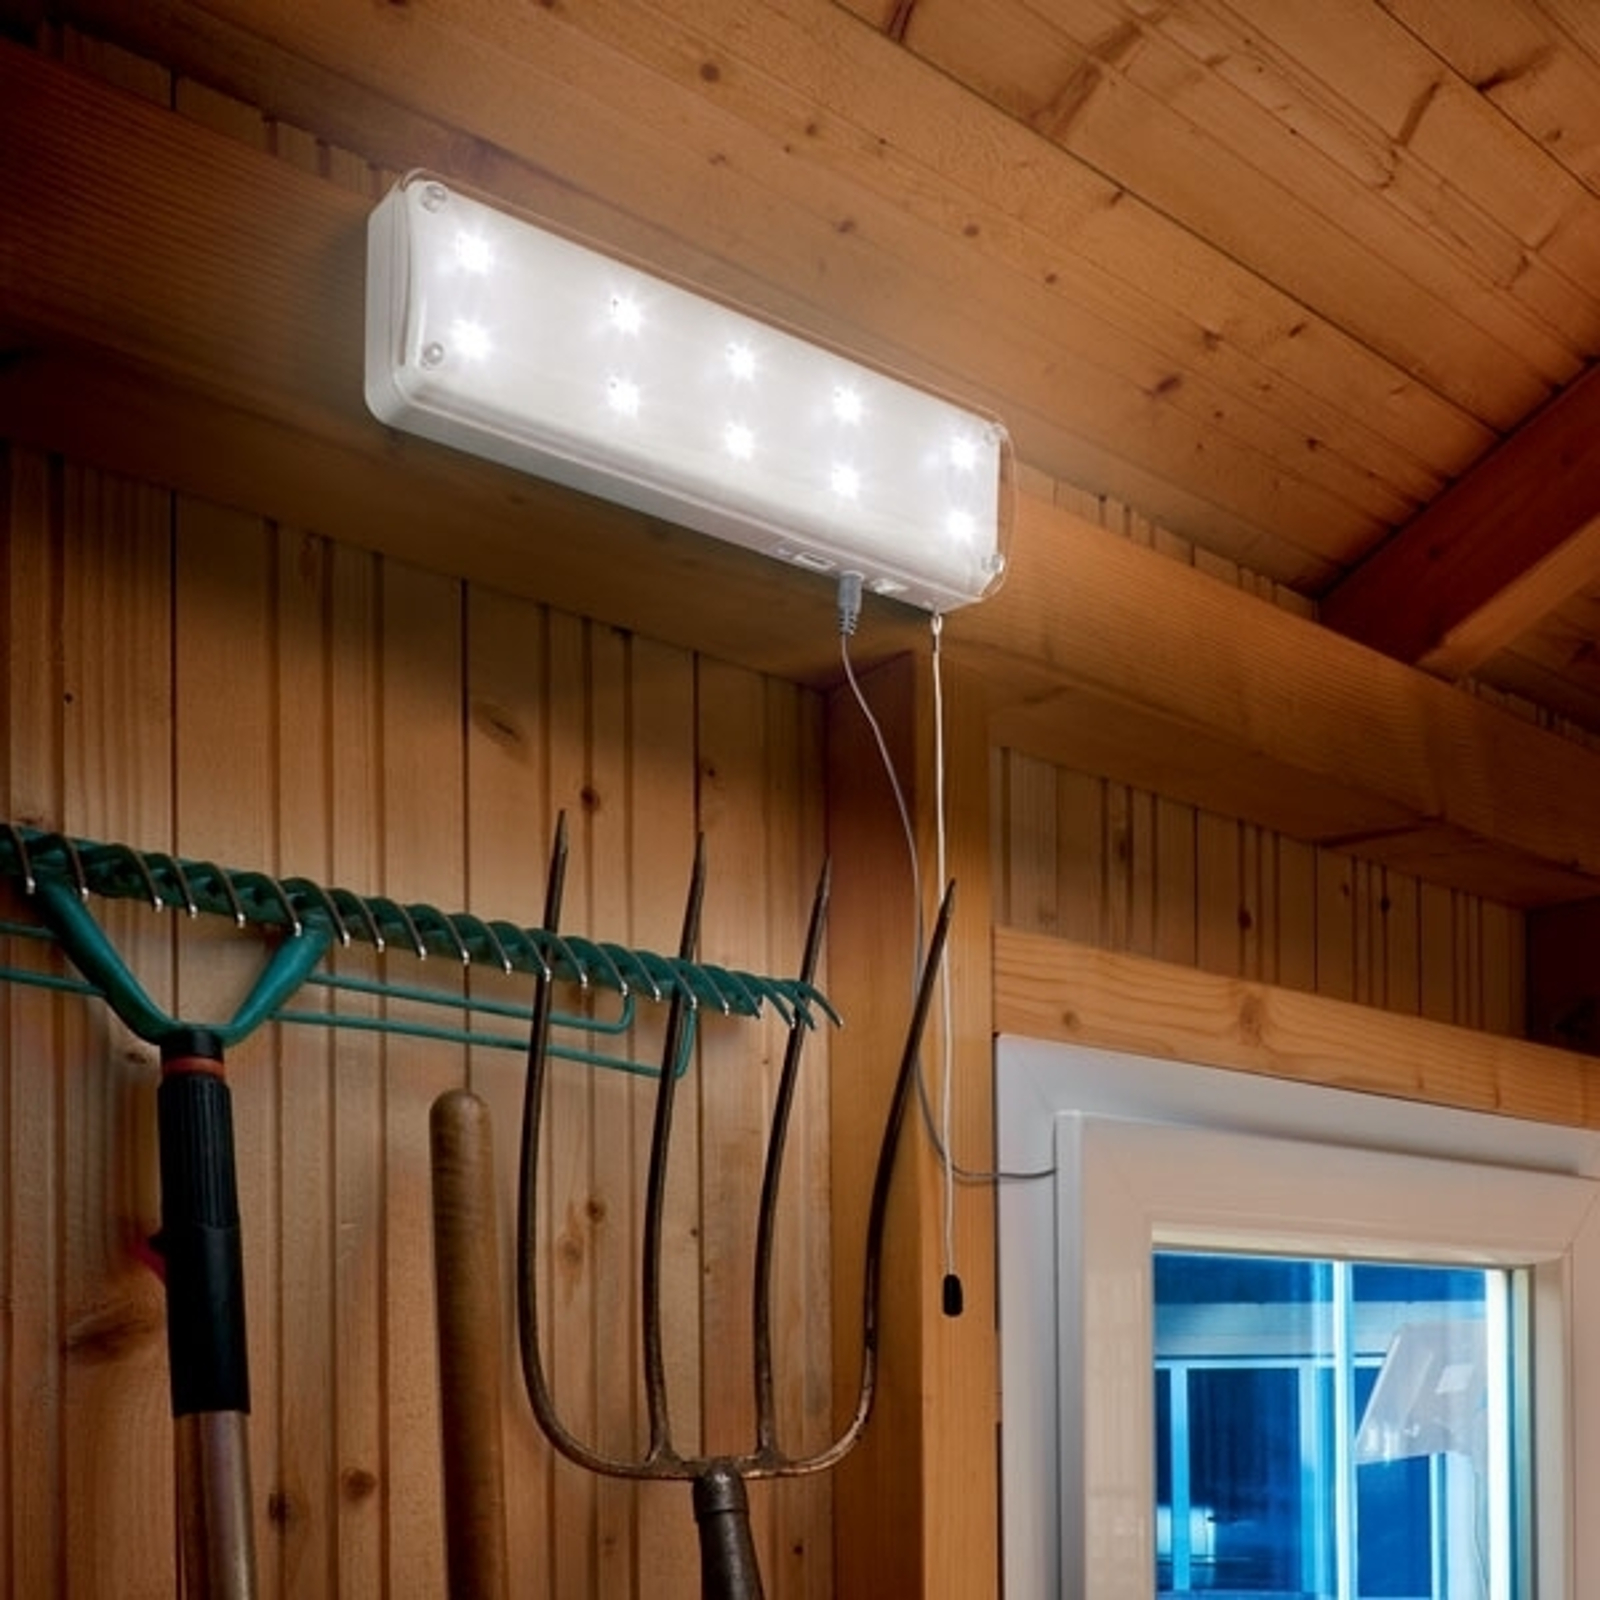 Solar light system with motion detector_3012201_1